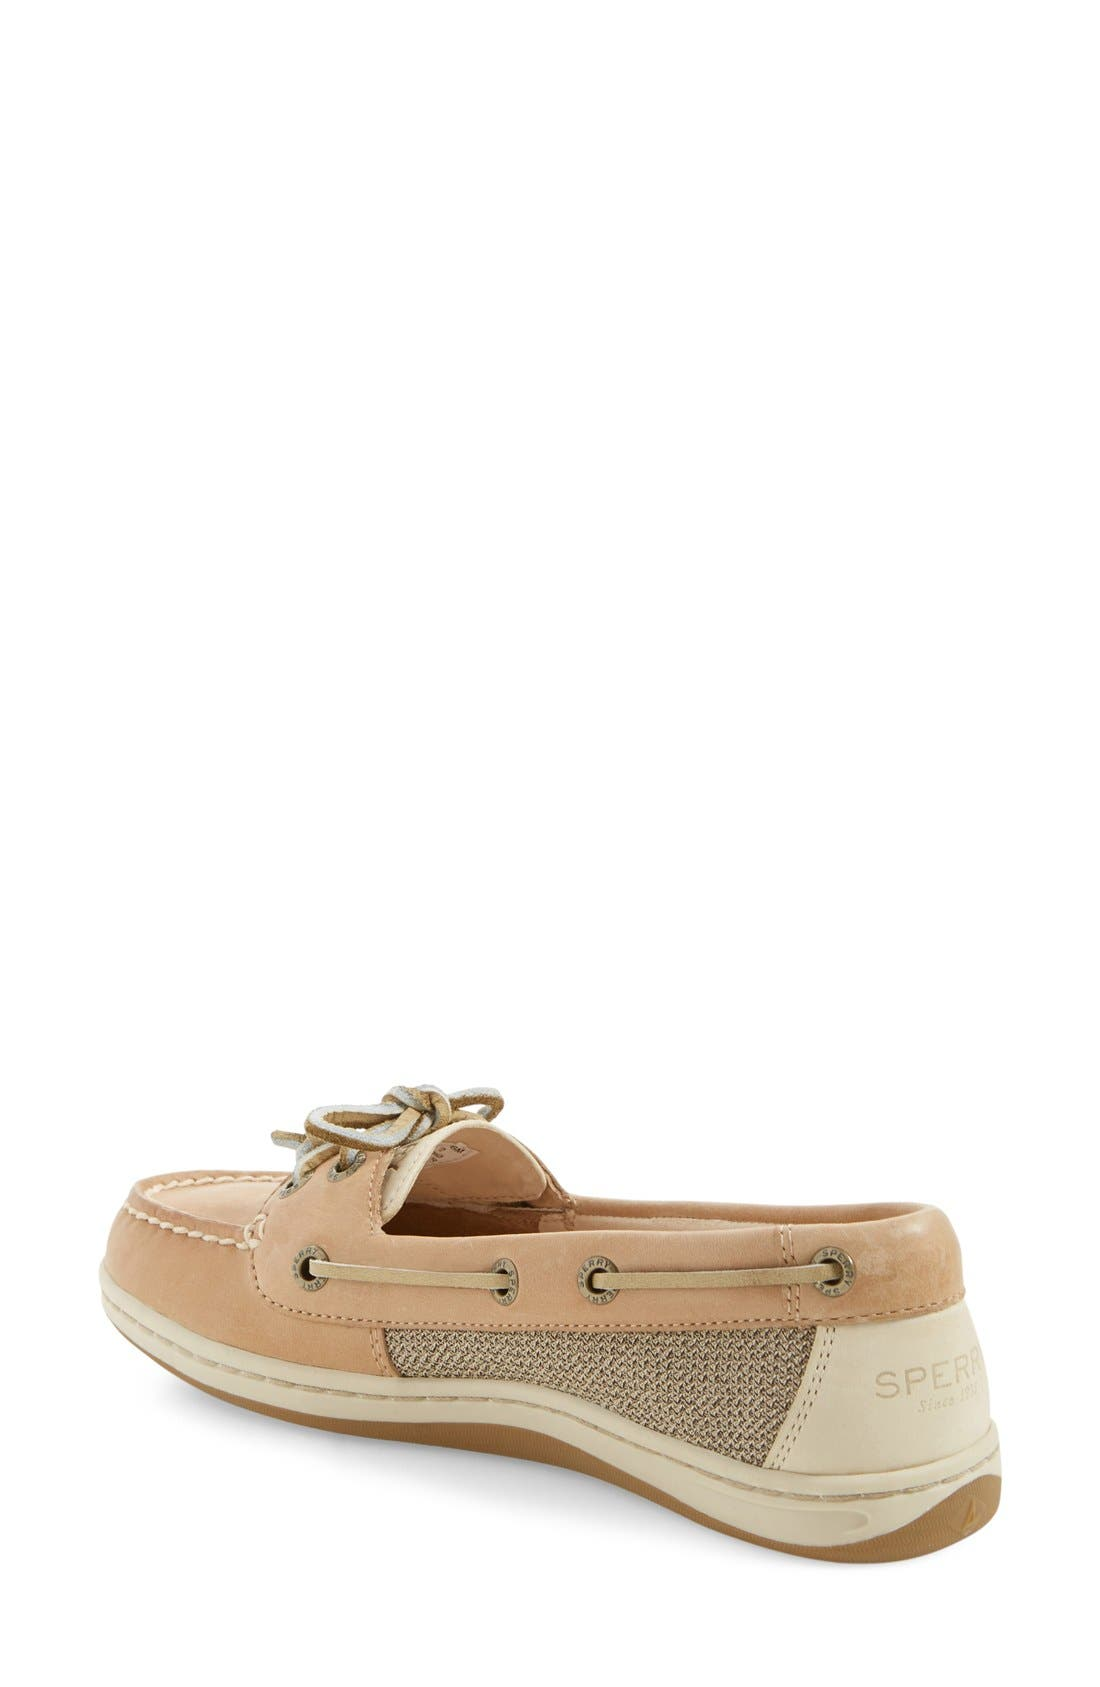 'Firefish' Boat Shoe,                             Alternate thumbnail 25, color,